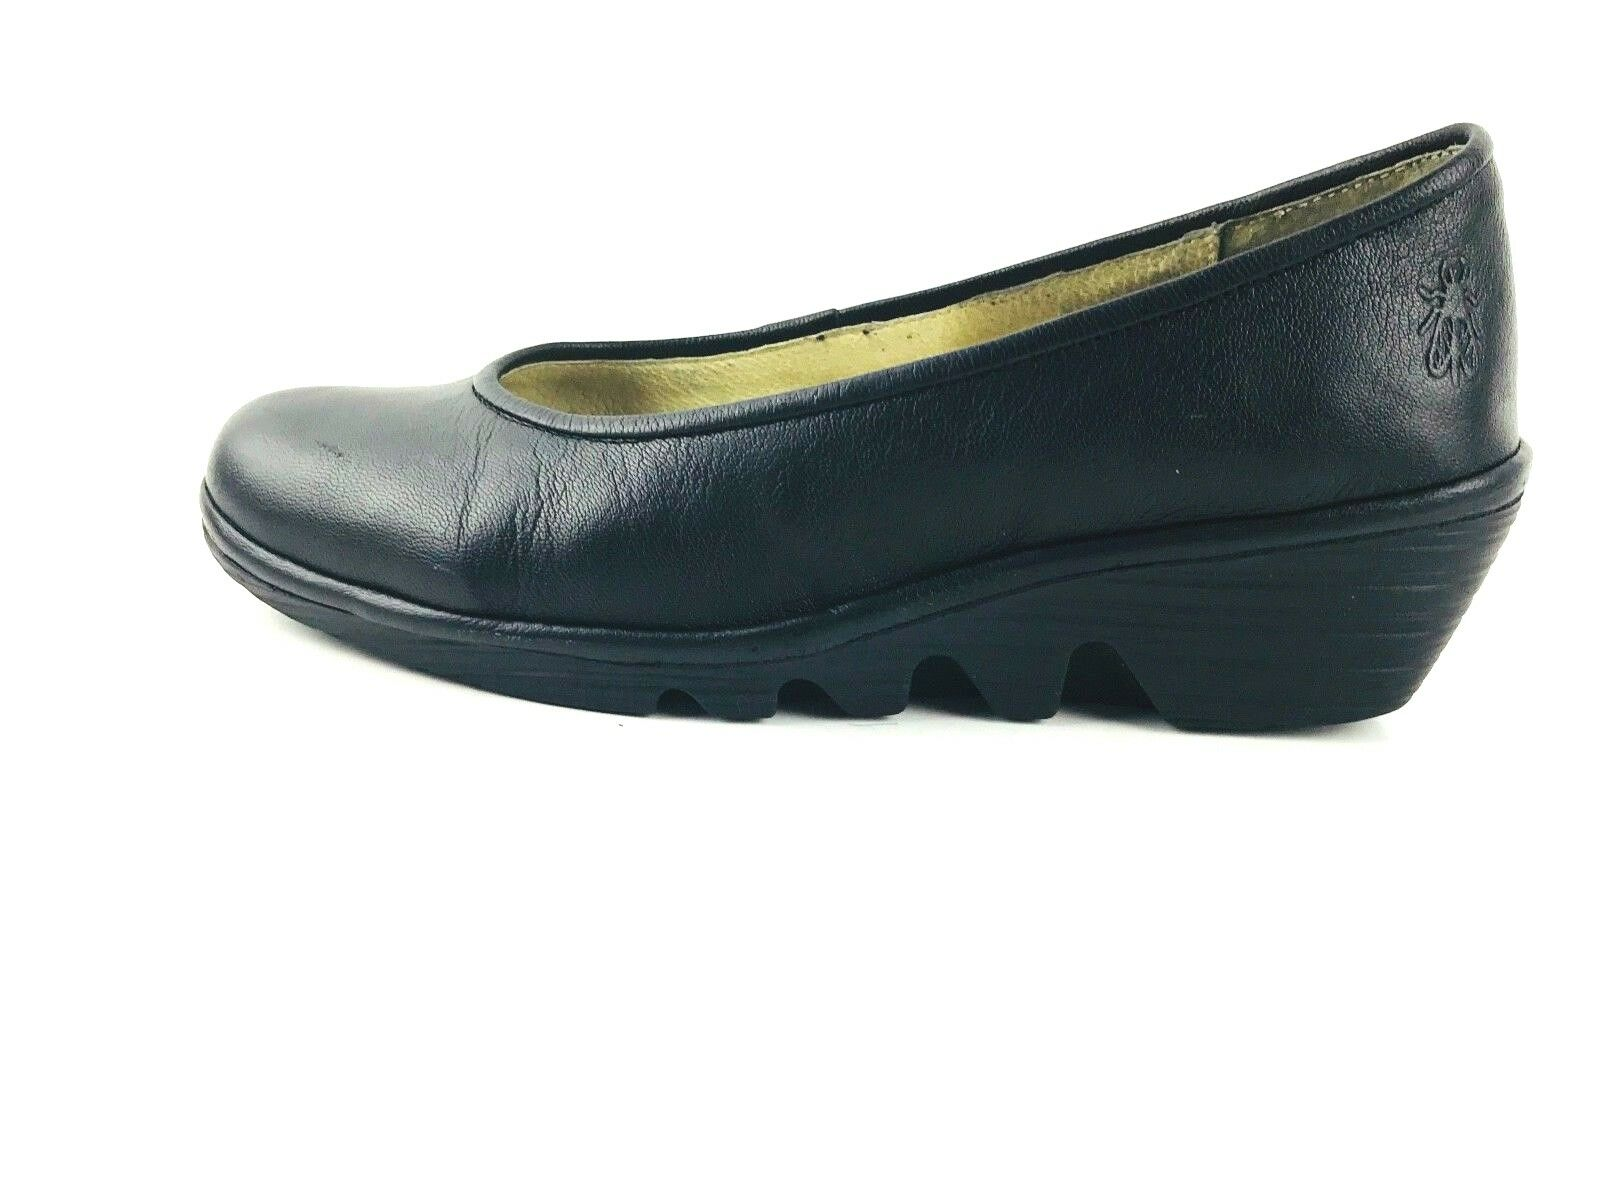 Fly London Women's Wedge Heel Black shoes Size US.5.5 UK.36 EU.3.5